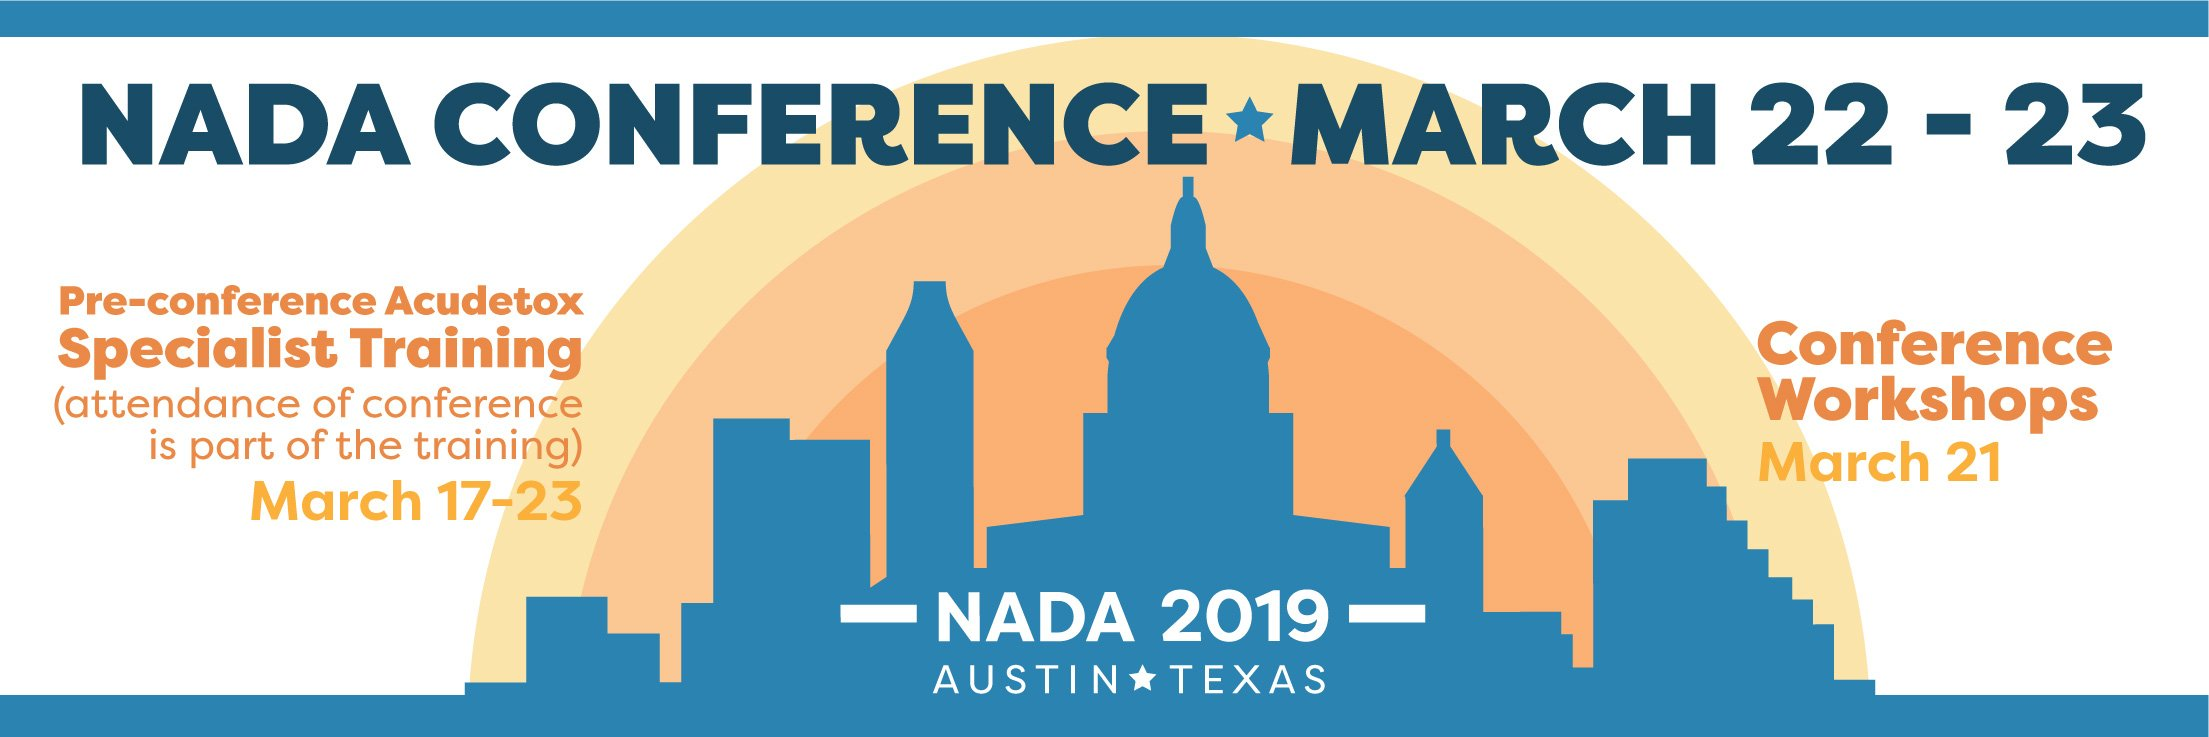 National NADA Conference in Austin, TX